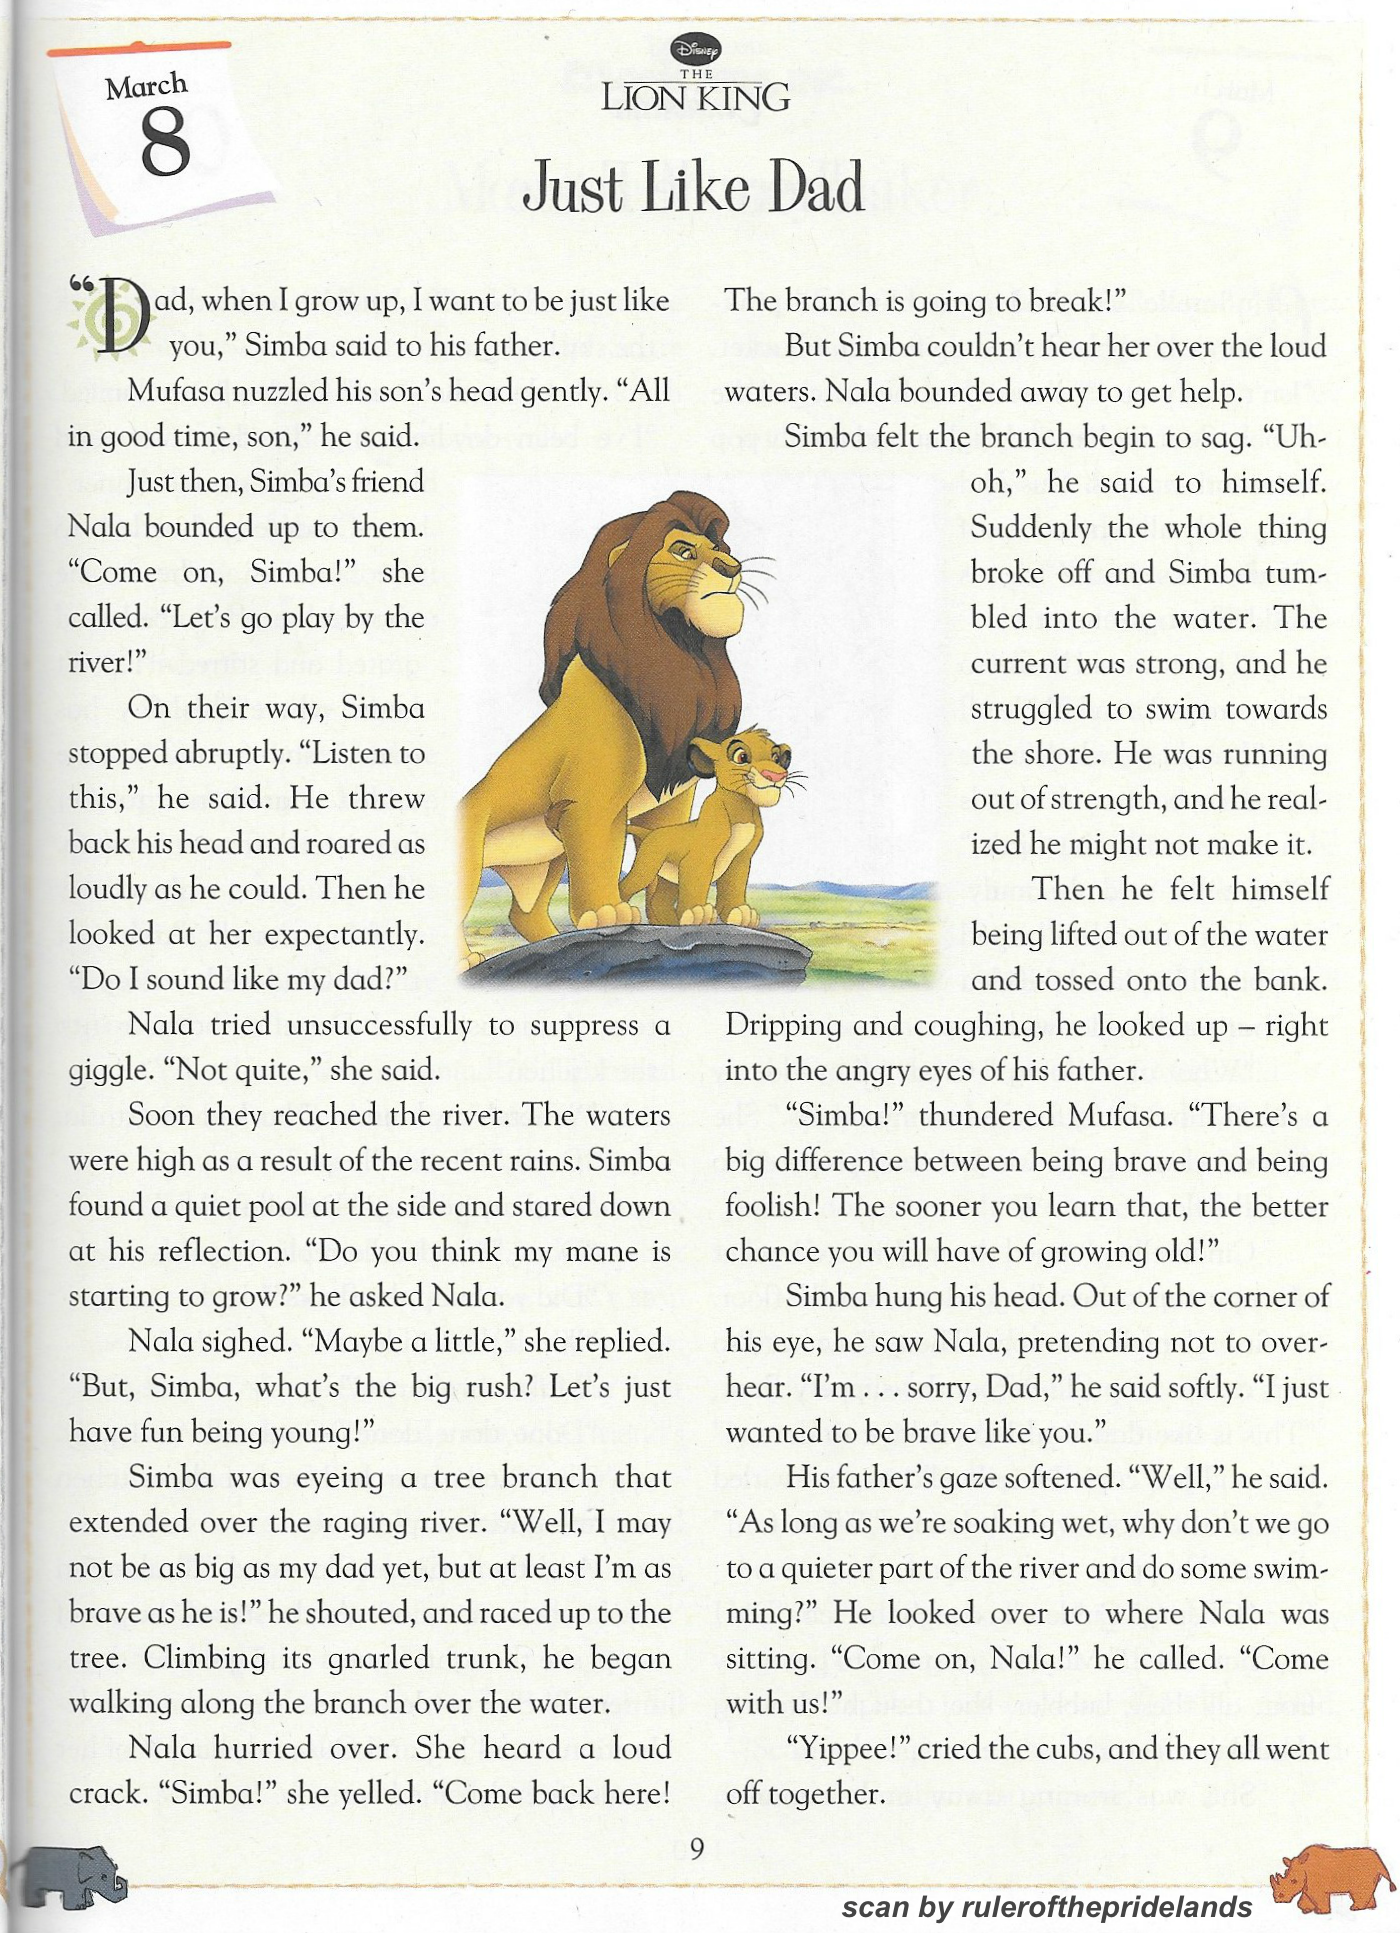 Lion King Short Story - March by rulerofthepridelands on ...